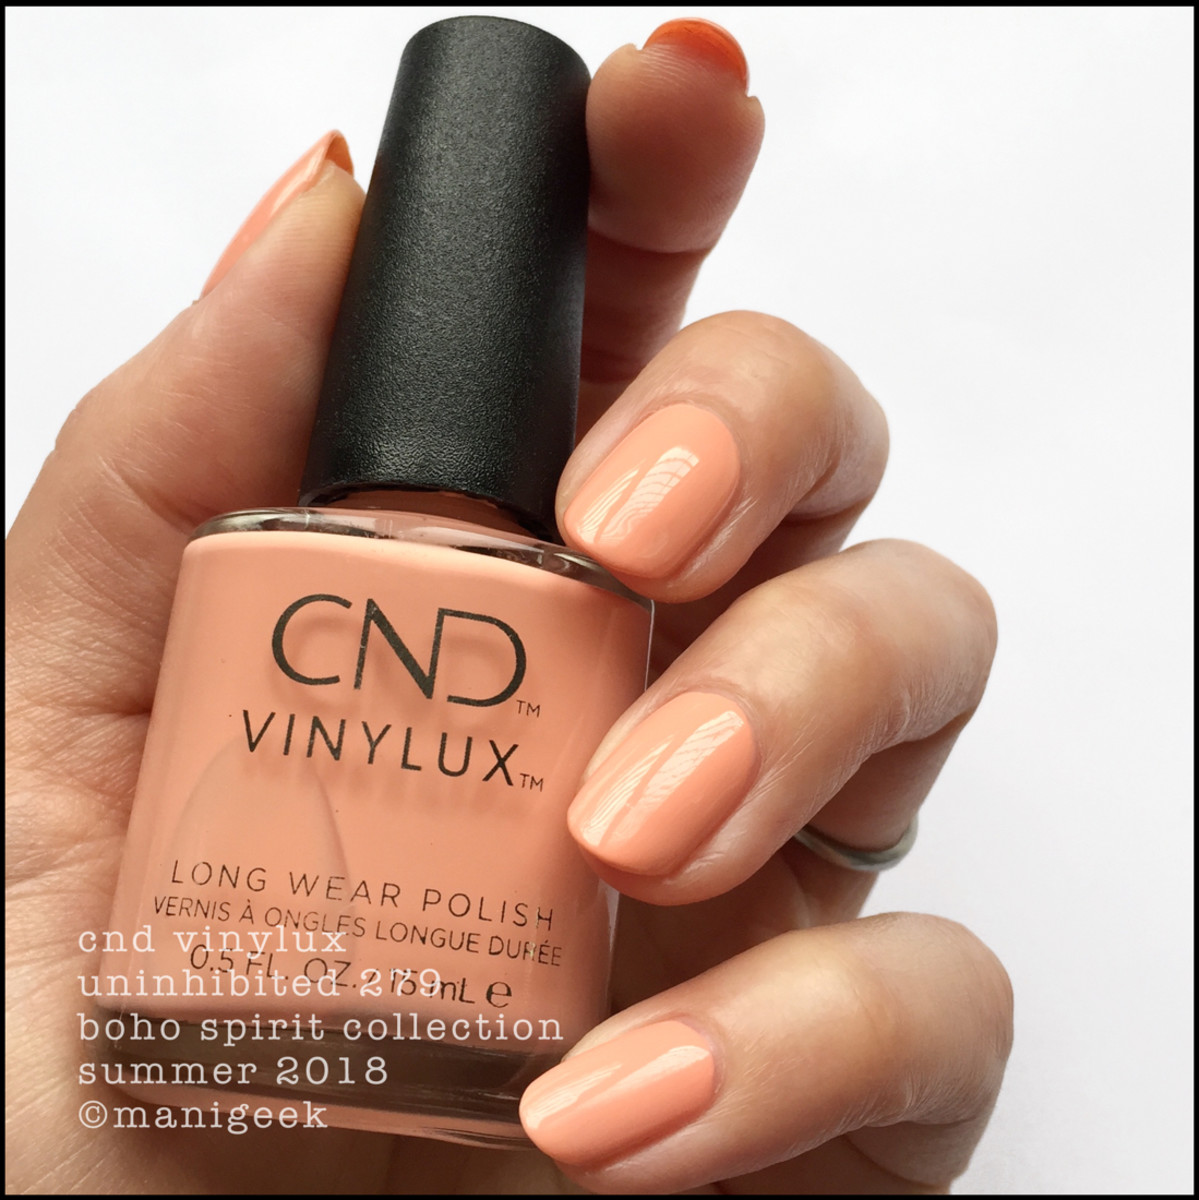 CND Vinylux Uninhibited 279 _ CND Boho Spirit Collection Summer 2018